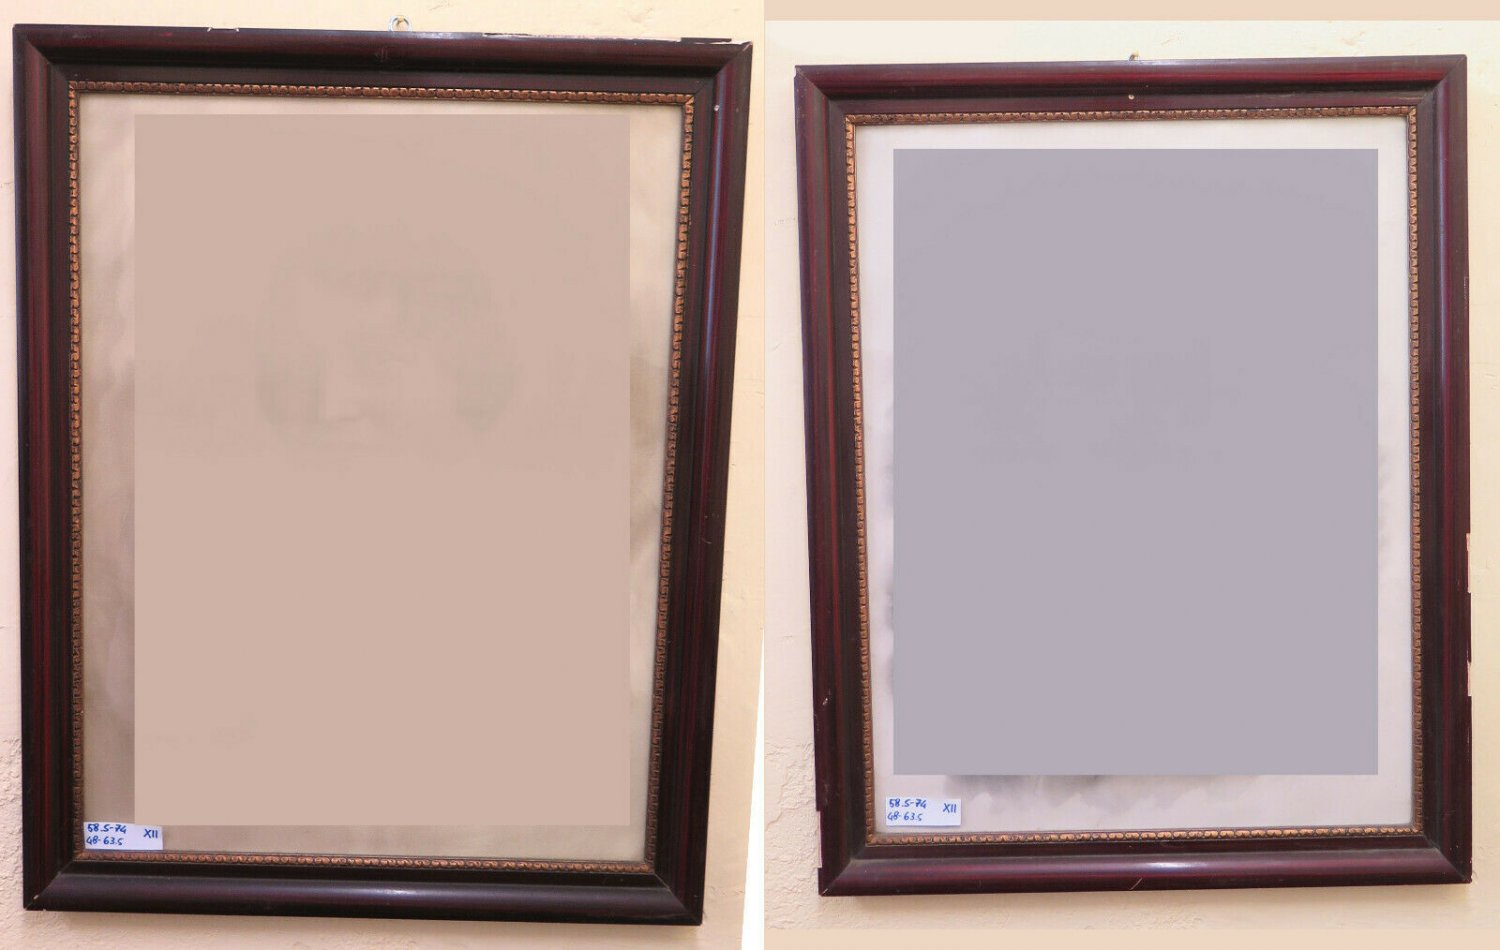 22 13/16x29 1/8in Couple Frames Vintage Wooden For Check Painted Mirror X11